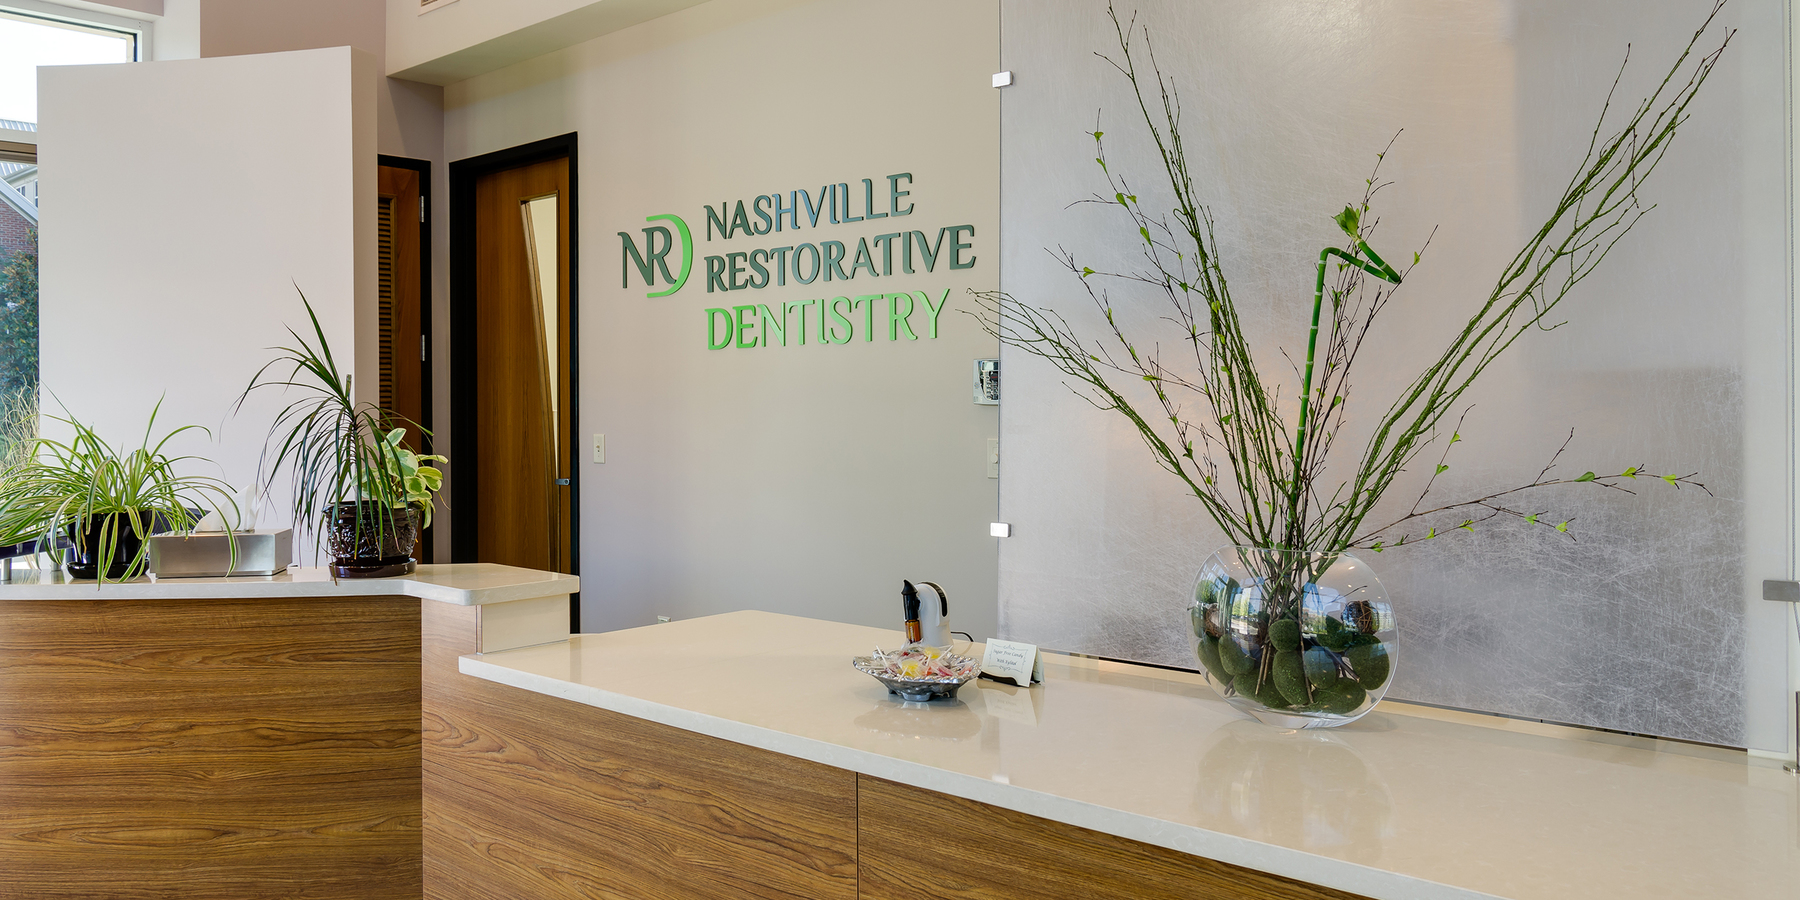 The entryway of Nashville Restorative Dentistry's office featuring the logo on the wall and plants sitting on the counter